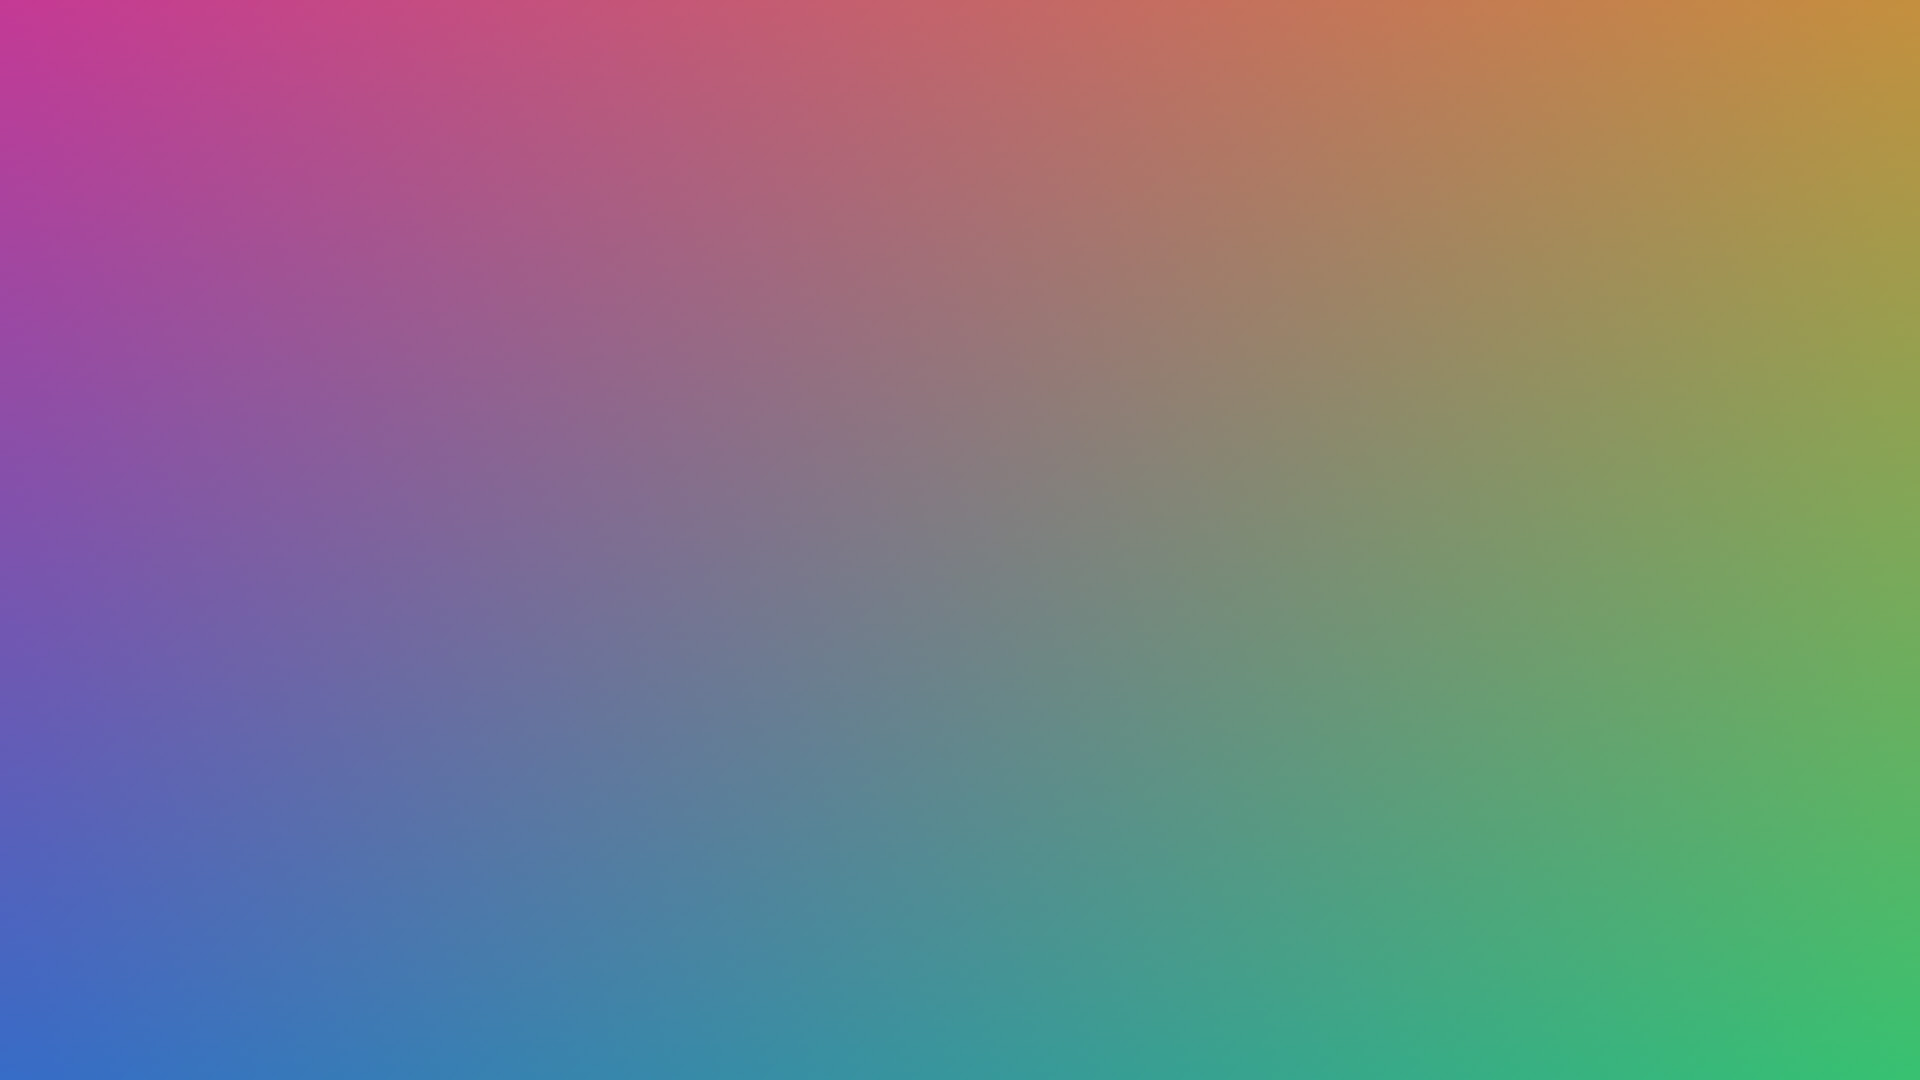 Fall Wallpaper Iphone 7 Sl87 Color Rainbow Blur Gradation Wallpaper